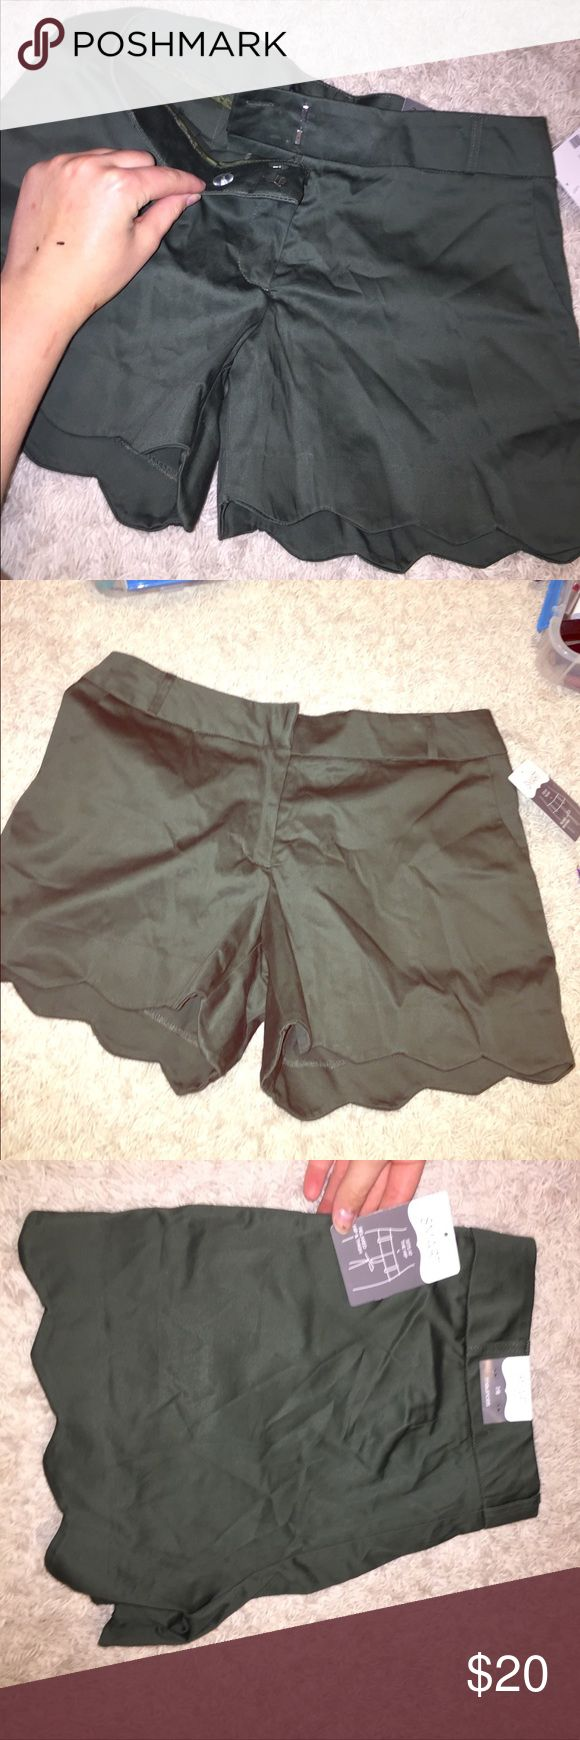 Maurice's Smart shorts Brand new shorts.  They have a scalloped edge to the bottoms.  Super cute, but cannot return without receipt. Maurices Shorts